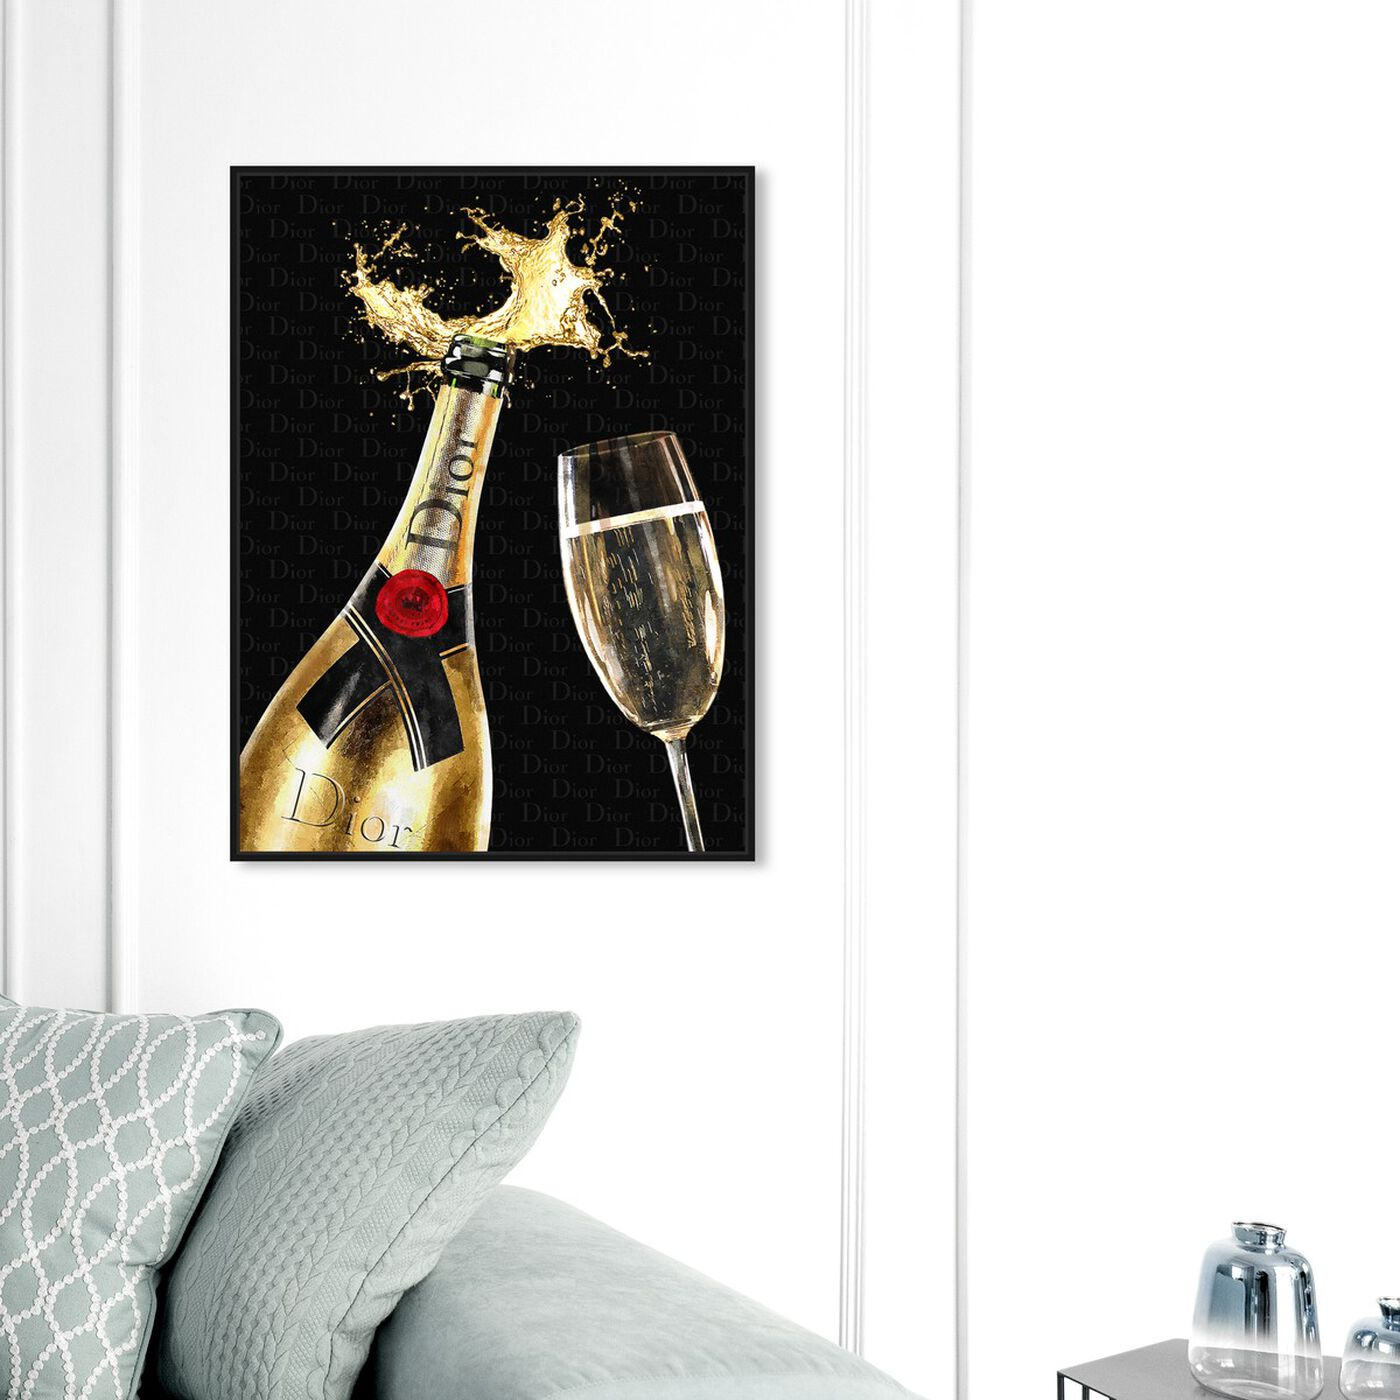 Hanging view of Get your drink on featuring fashion and glam and lifestyle art.